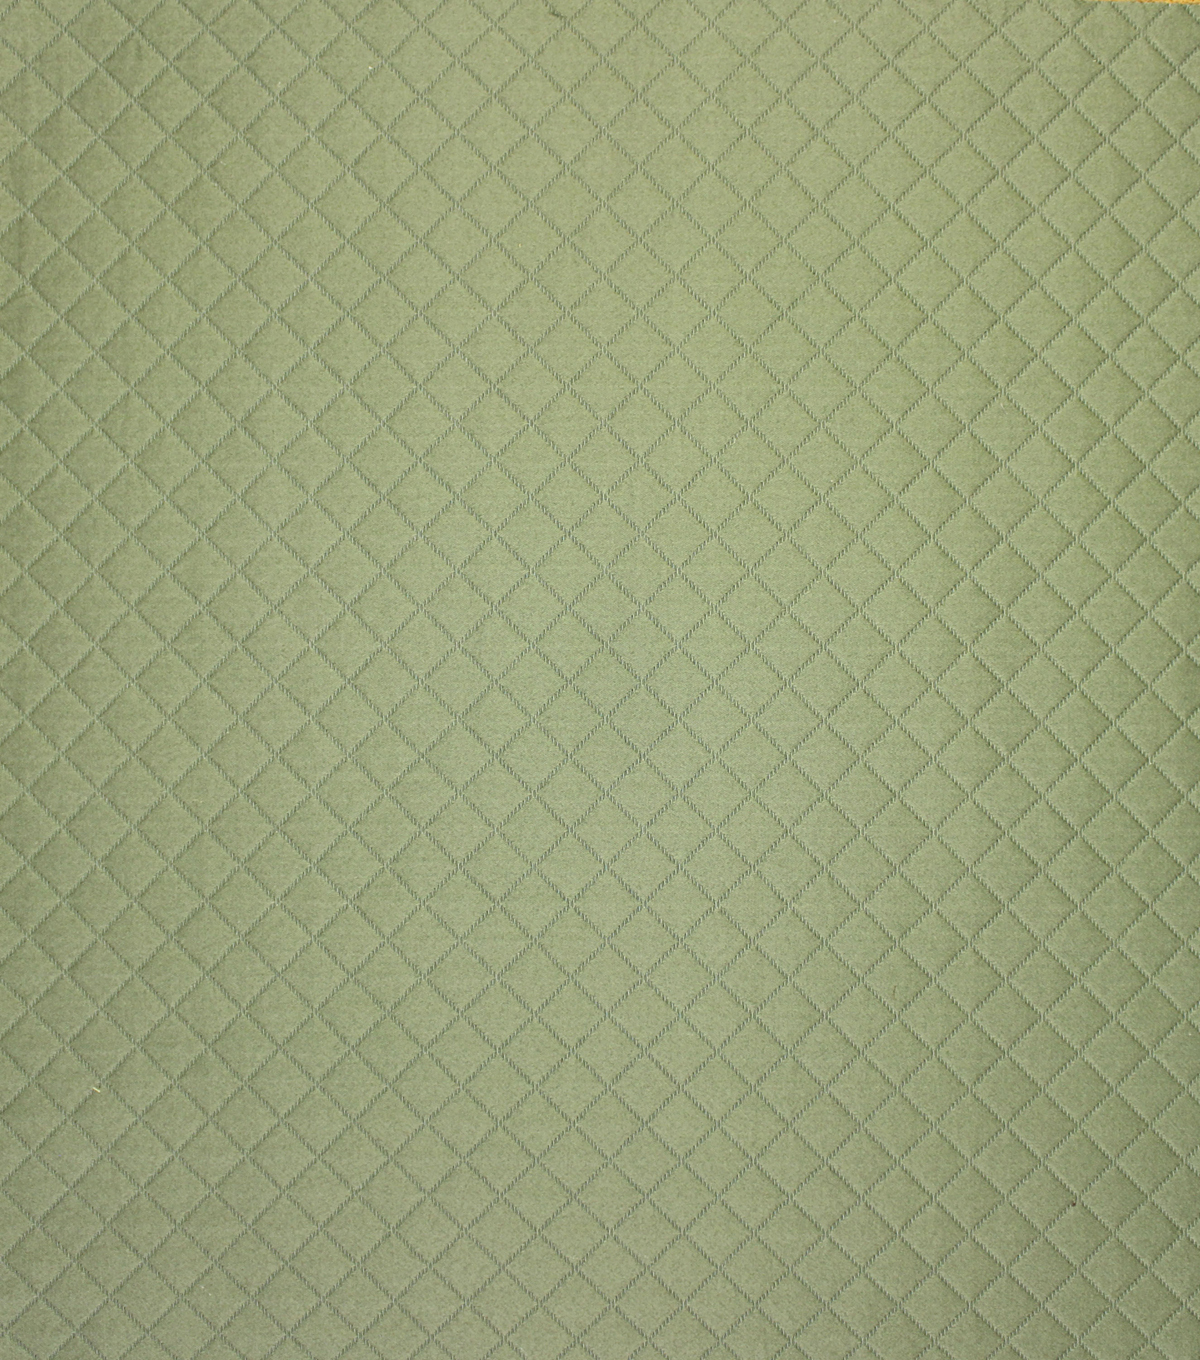 Home Decor 8\u0022x8\u0022 Fabric Swatch-Upholstery Fabric Barrow M8342-5670 Nile